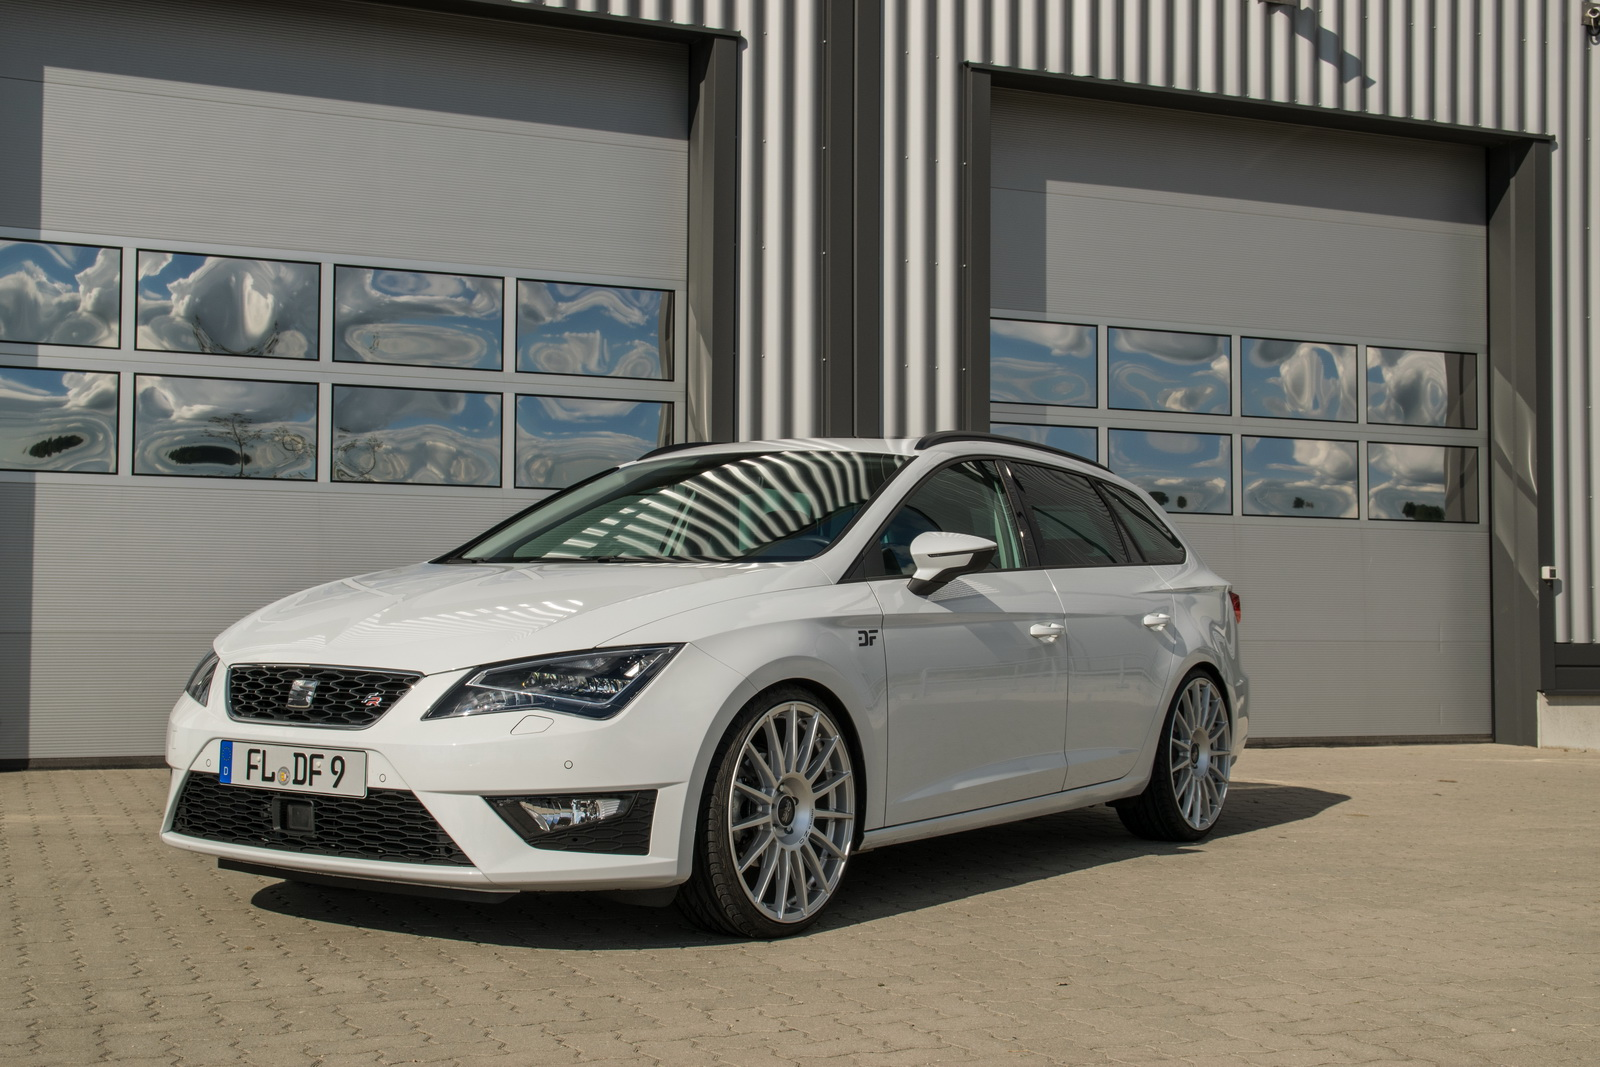 seat leon st fr with 210 hp is a hot wagon you can afford. Black Bedroom Furniture Sets. Home Design Ideas